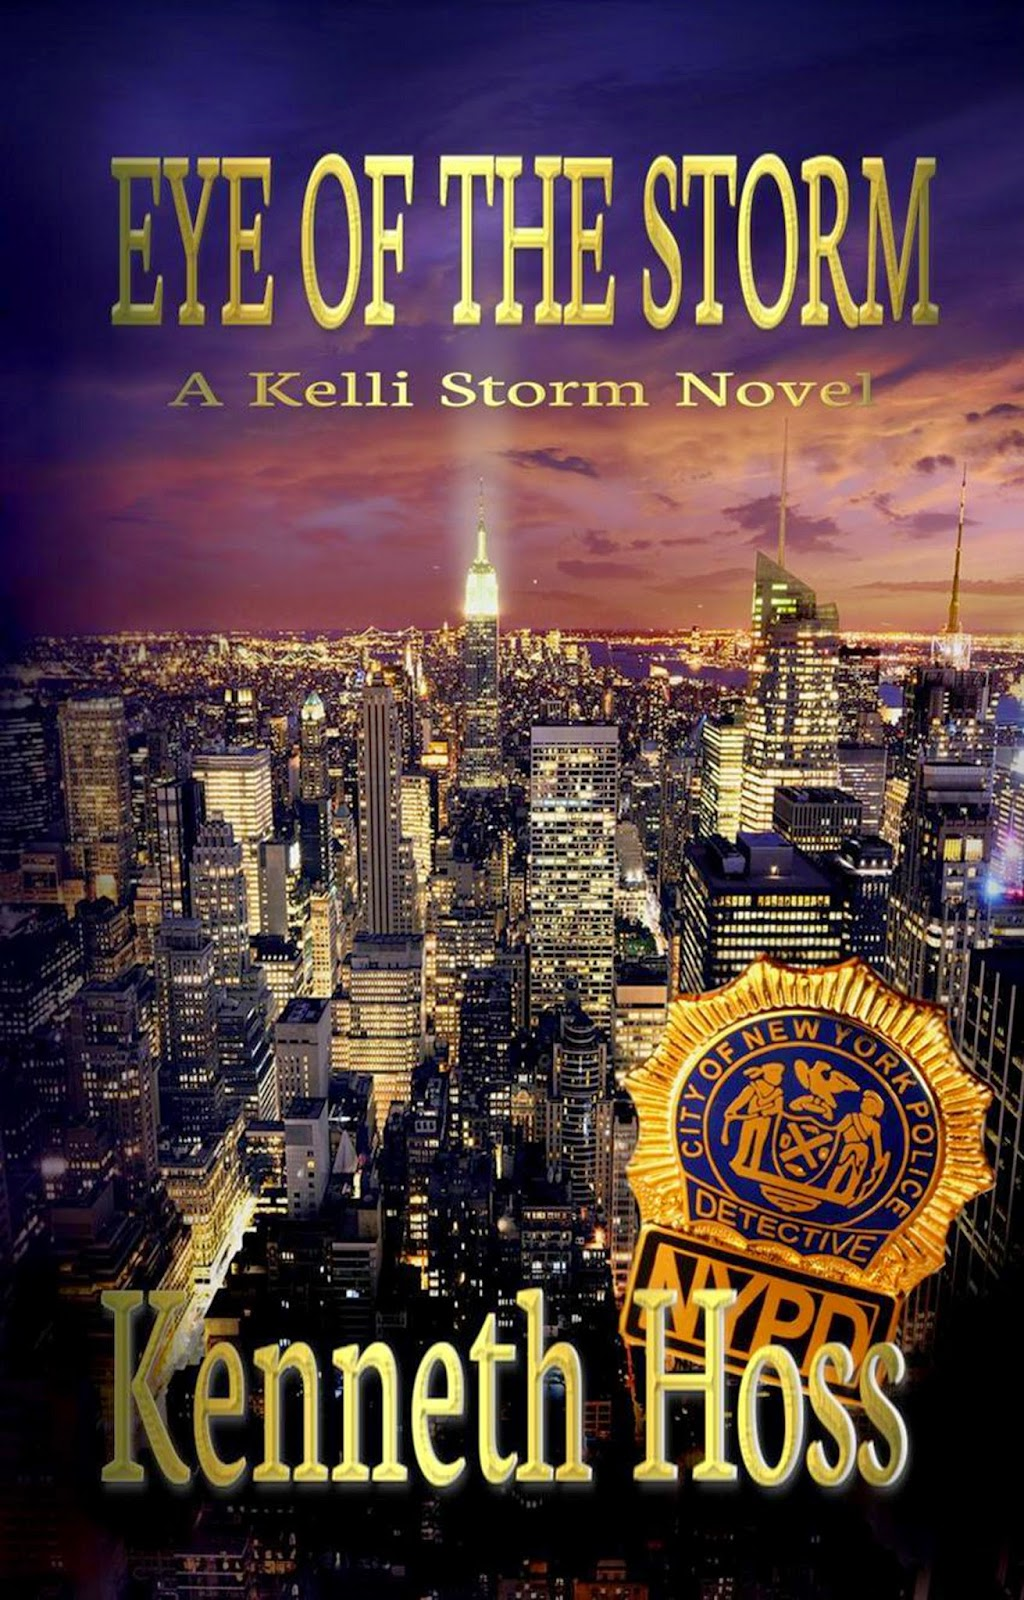 http://www.amazon.com/Eye-Storm-Kelli-Novel-Book-ebook/dp/B00MRBB5P4/ref=sr_1_1_title_0_main?s=books&ie=UTF8&qid=1408203198&sr=1-1&keywords=eye+of+the+storm+a+kelli+storm+novel